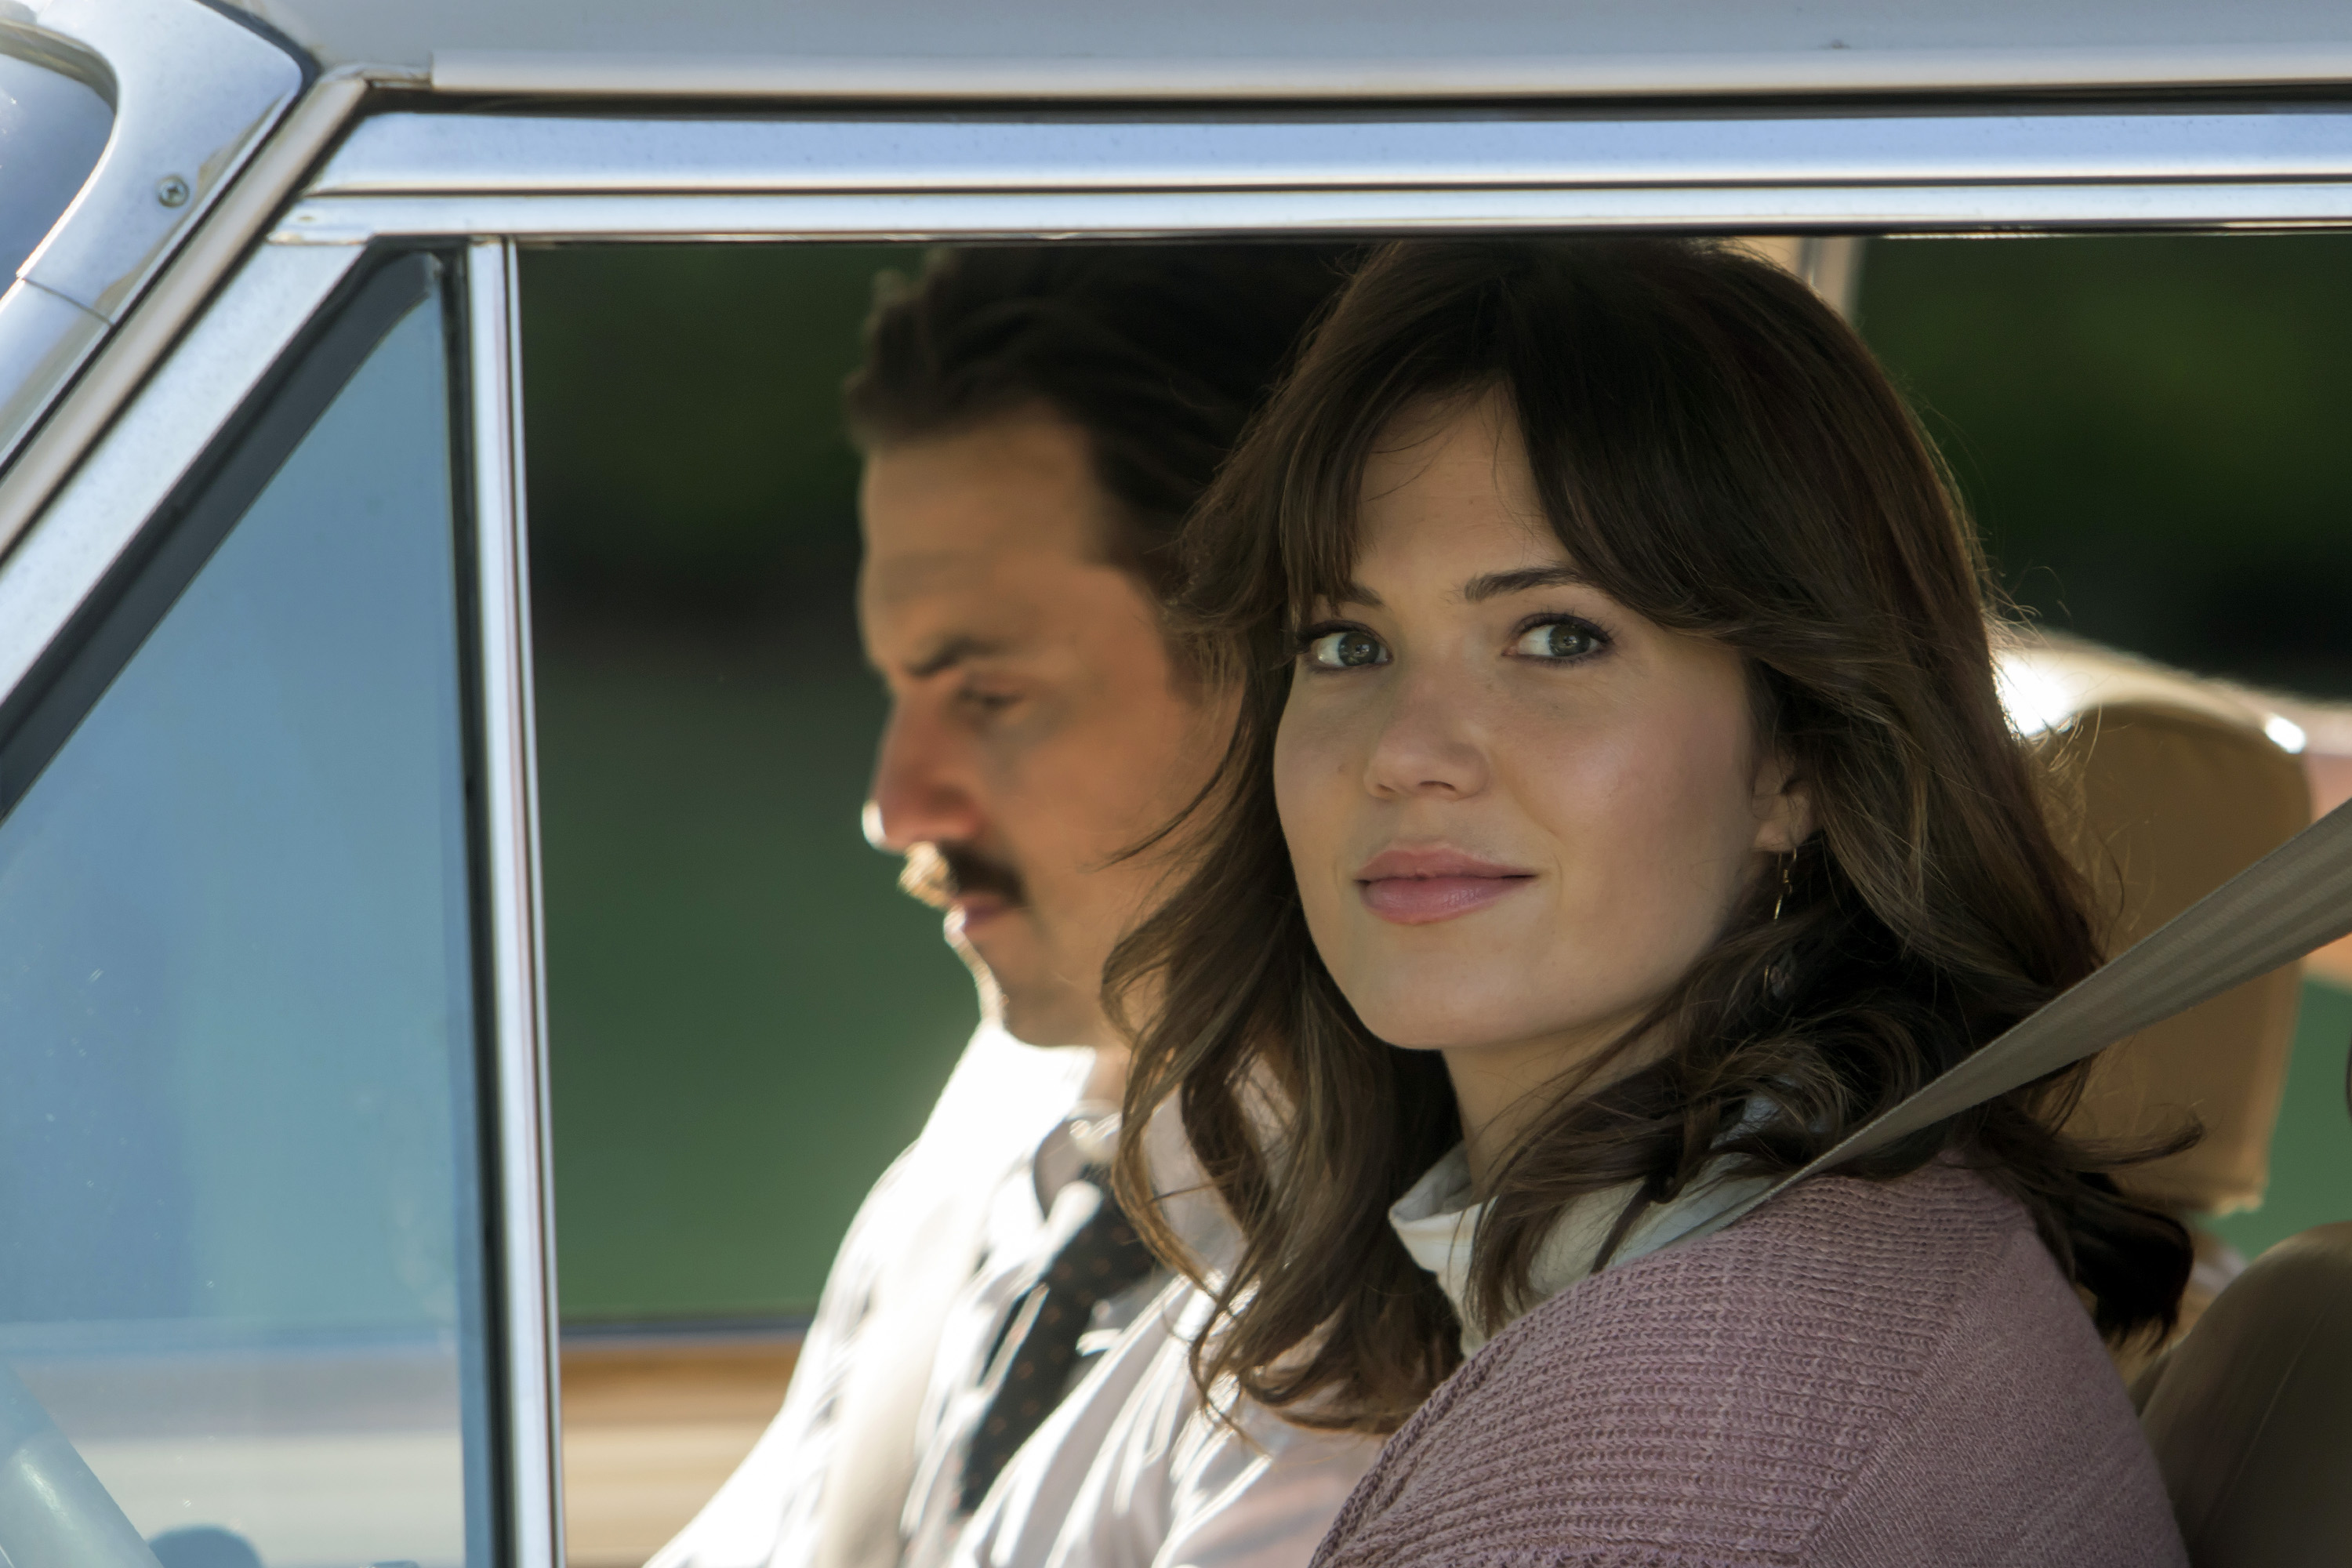 Mandy-Moore-Snubbed-From-2018-Emmy-Nominations-and-Fans-Flip-Out-On-Twitter